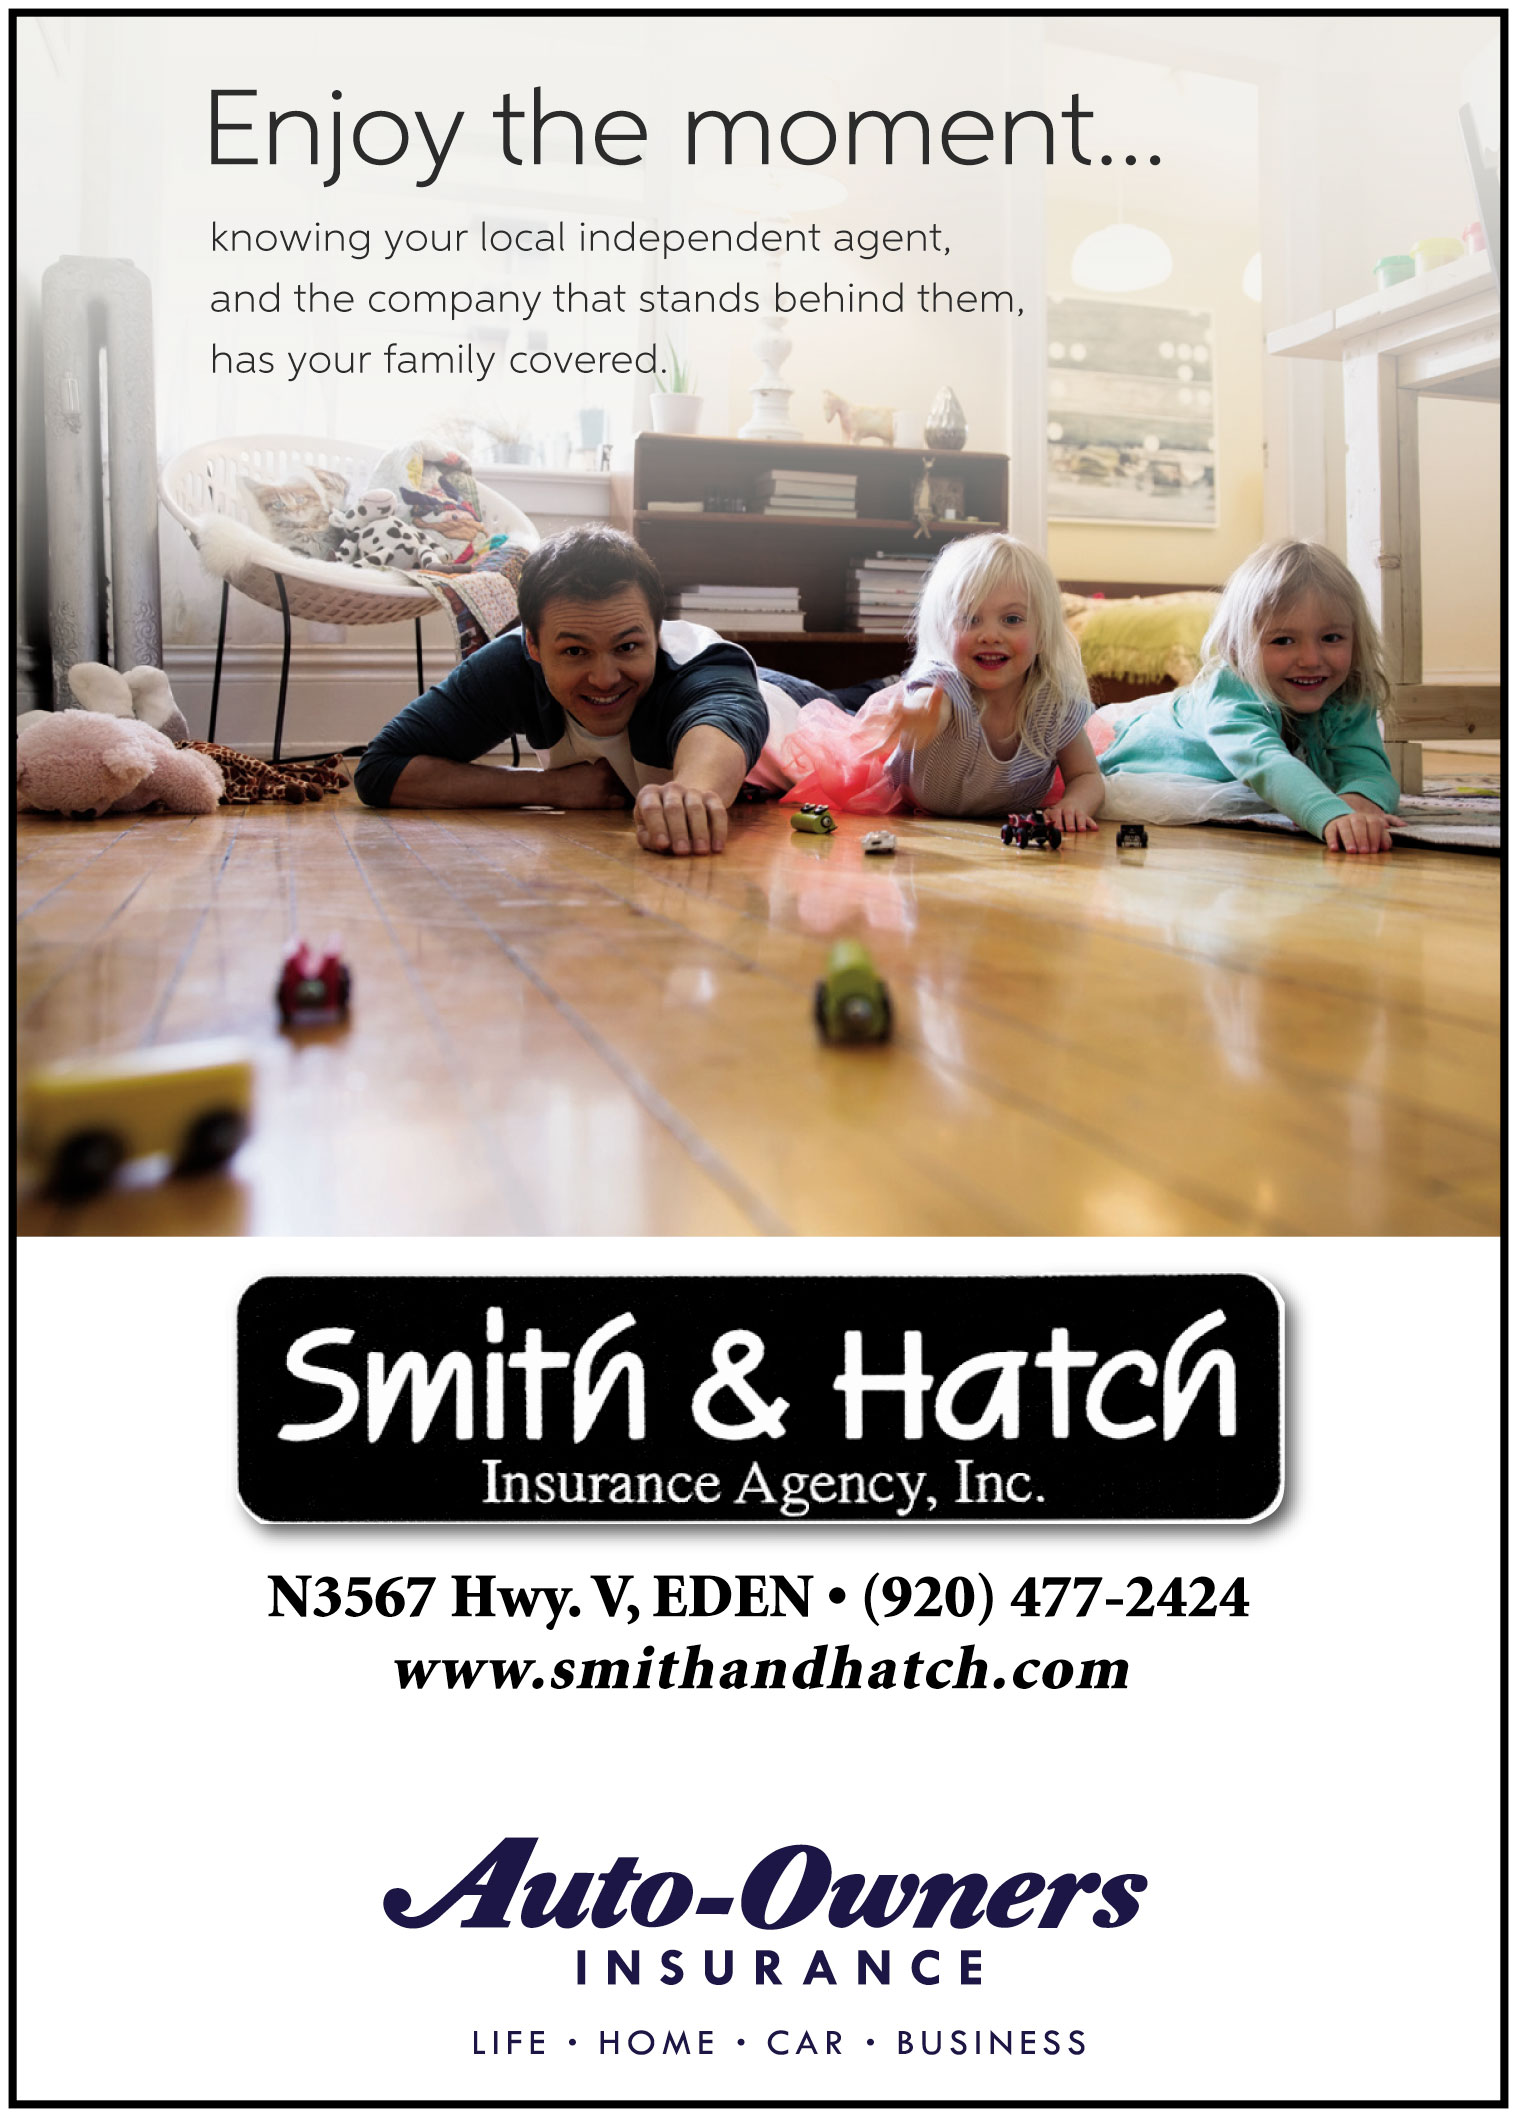 Smith and Hatch